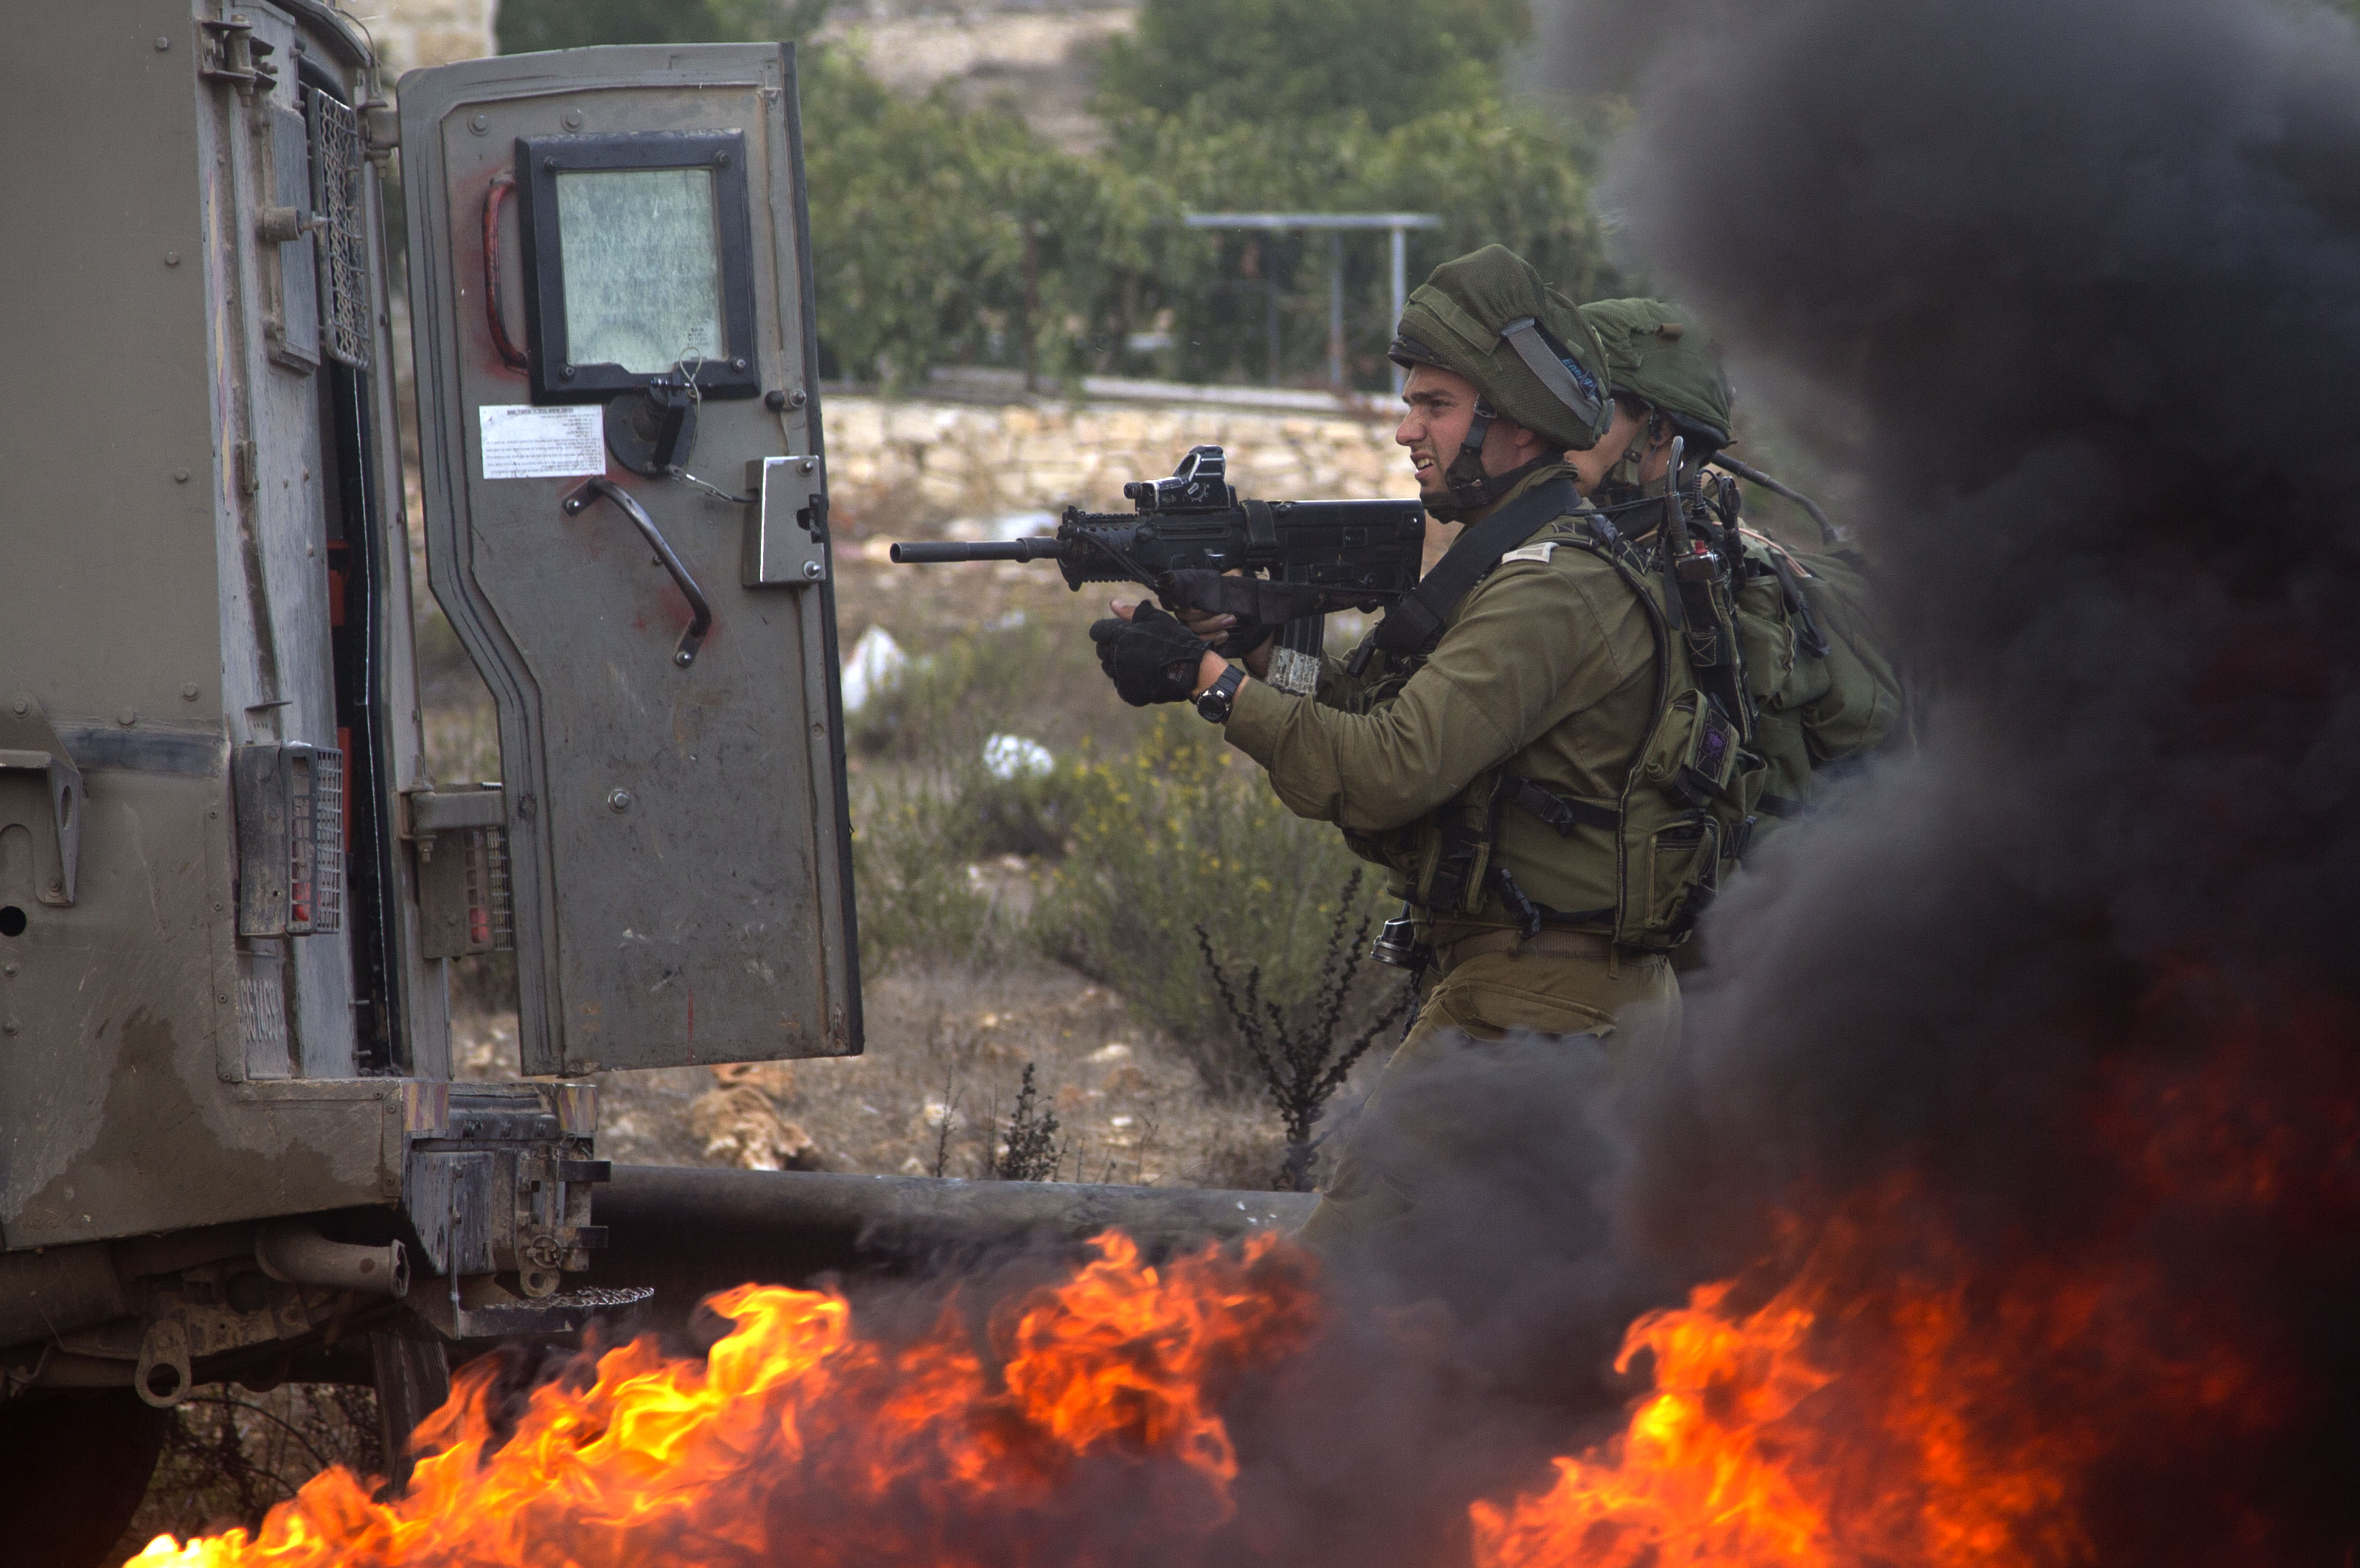 The Latest: Palestinian envoy to UN wants emergency meeting